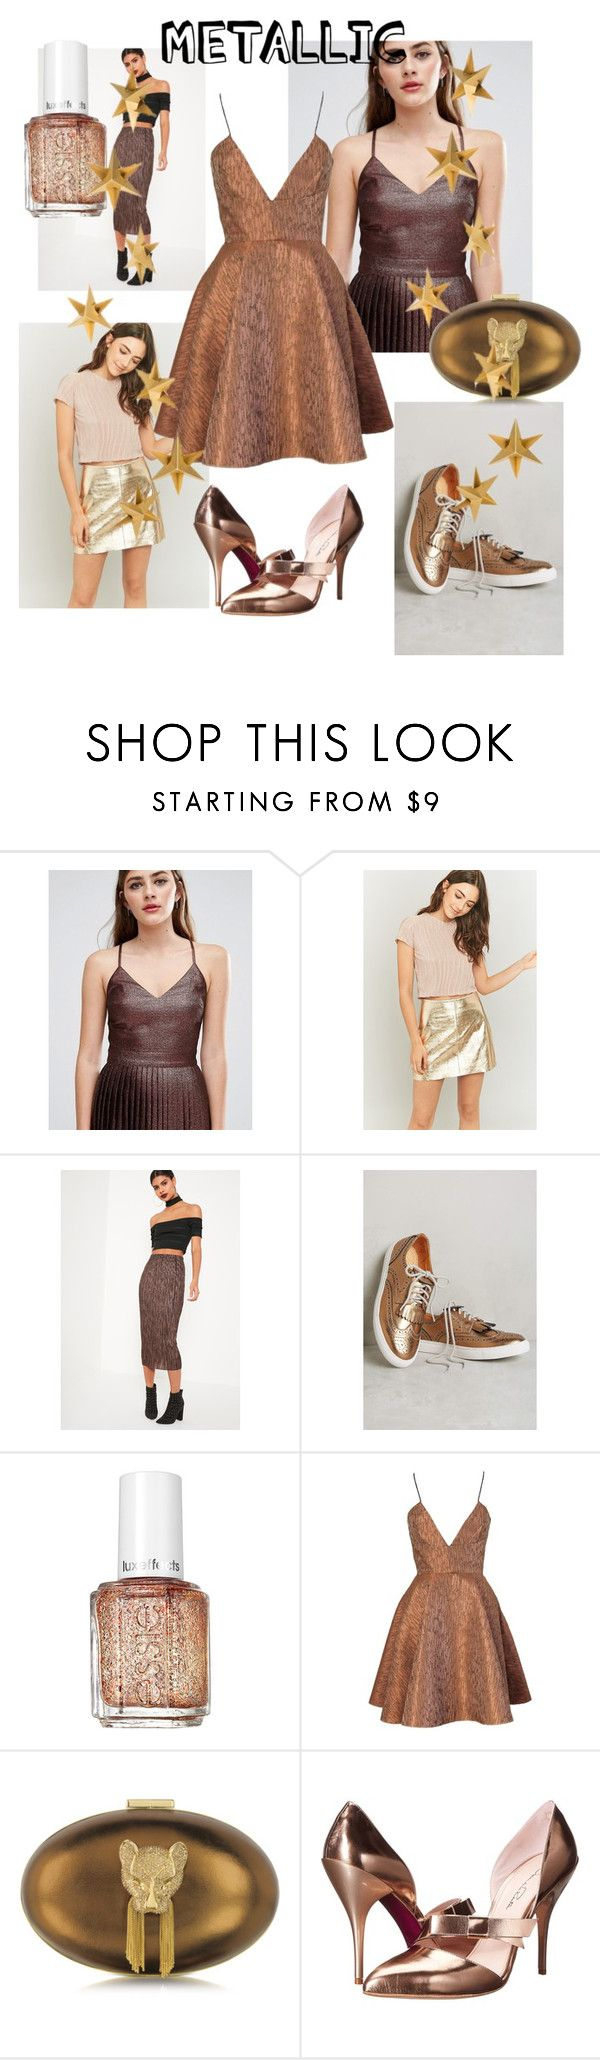 """Metallic"" by madeliefbytheway ❤ liked on Polyvore featuring ASOS, Light Before Dark, Missguided, Anthropologie, Essie, Joana Almagro, Thalé Blanc, Oscar de la Renta and Livingly"